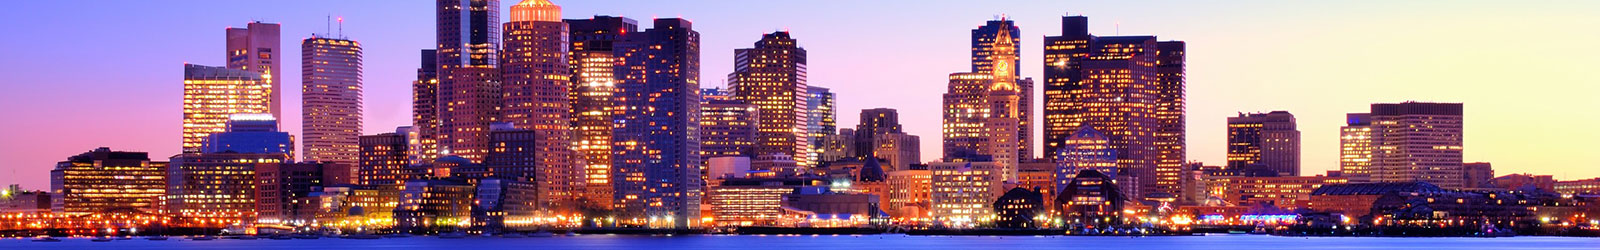 boston_night